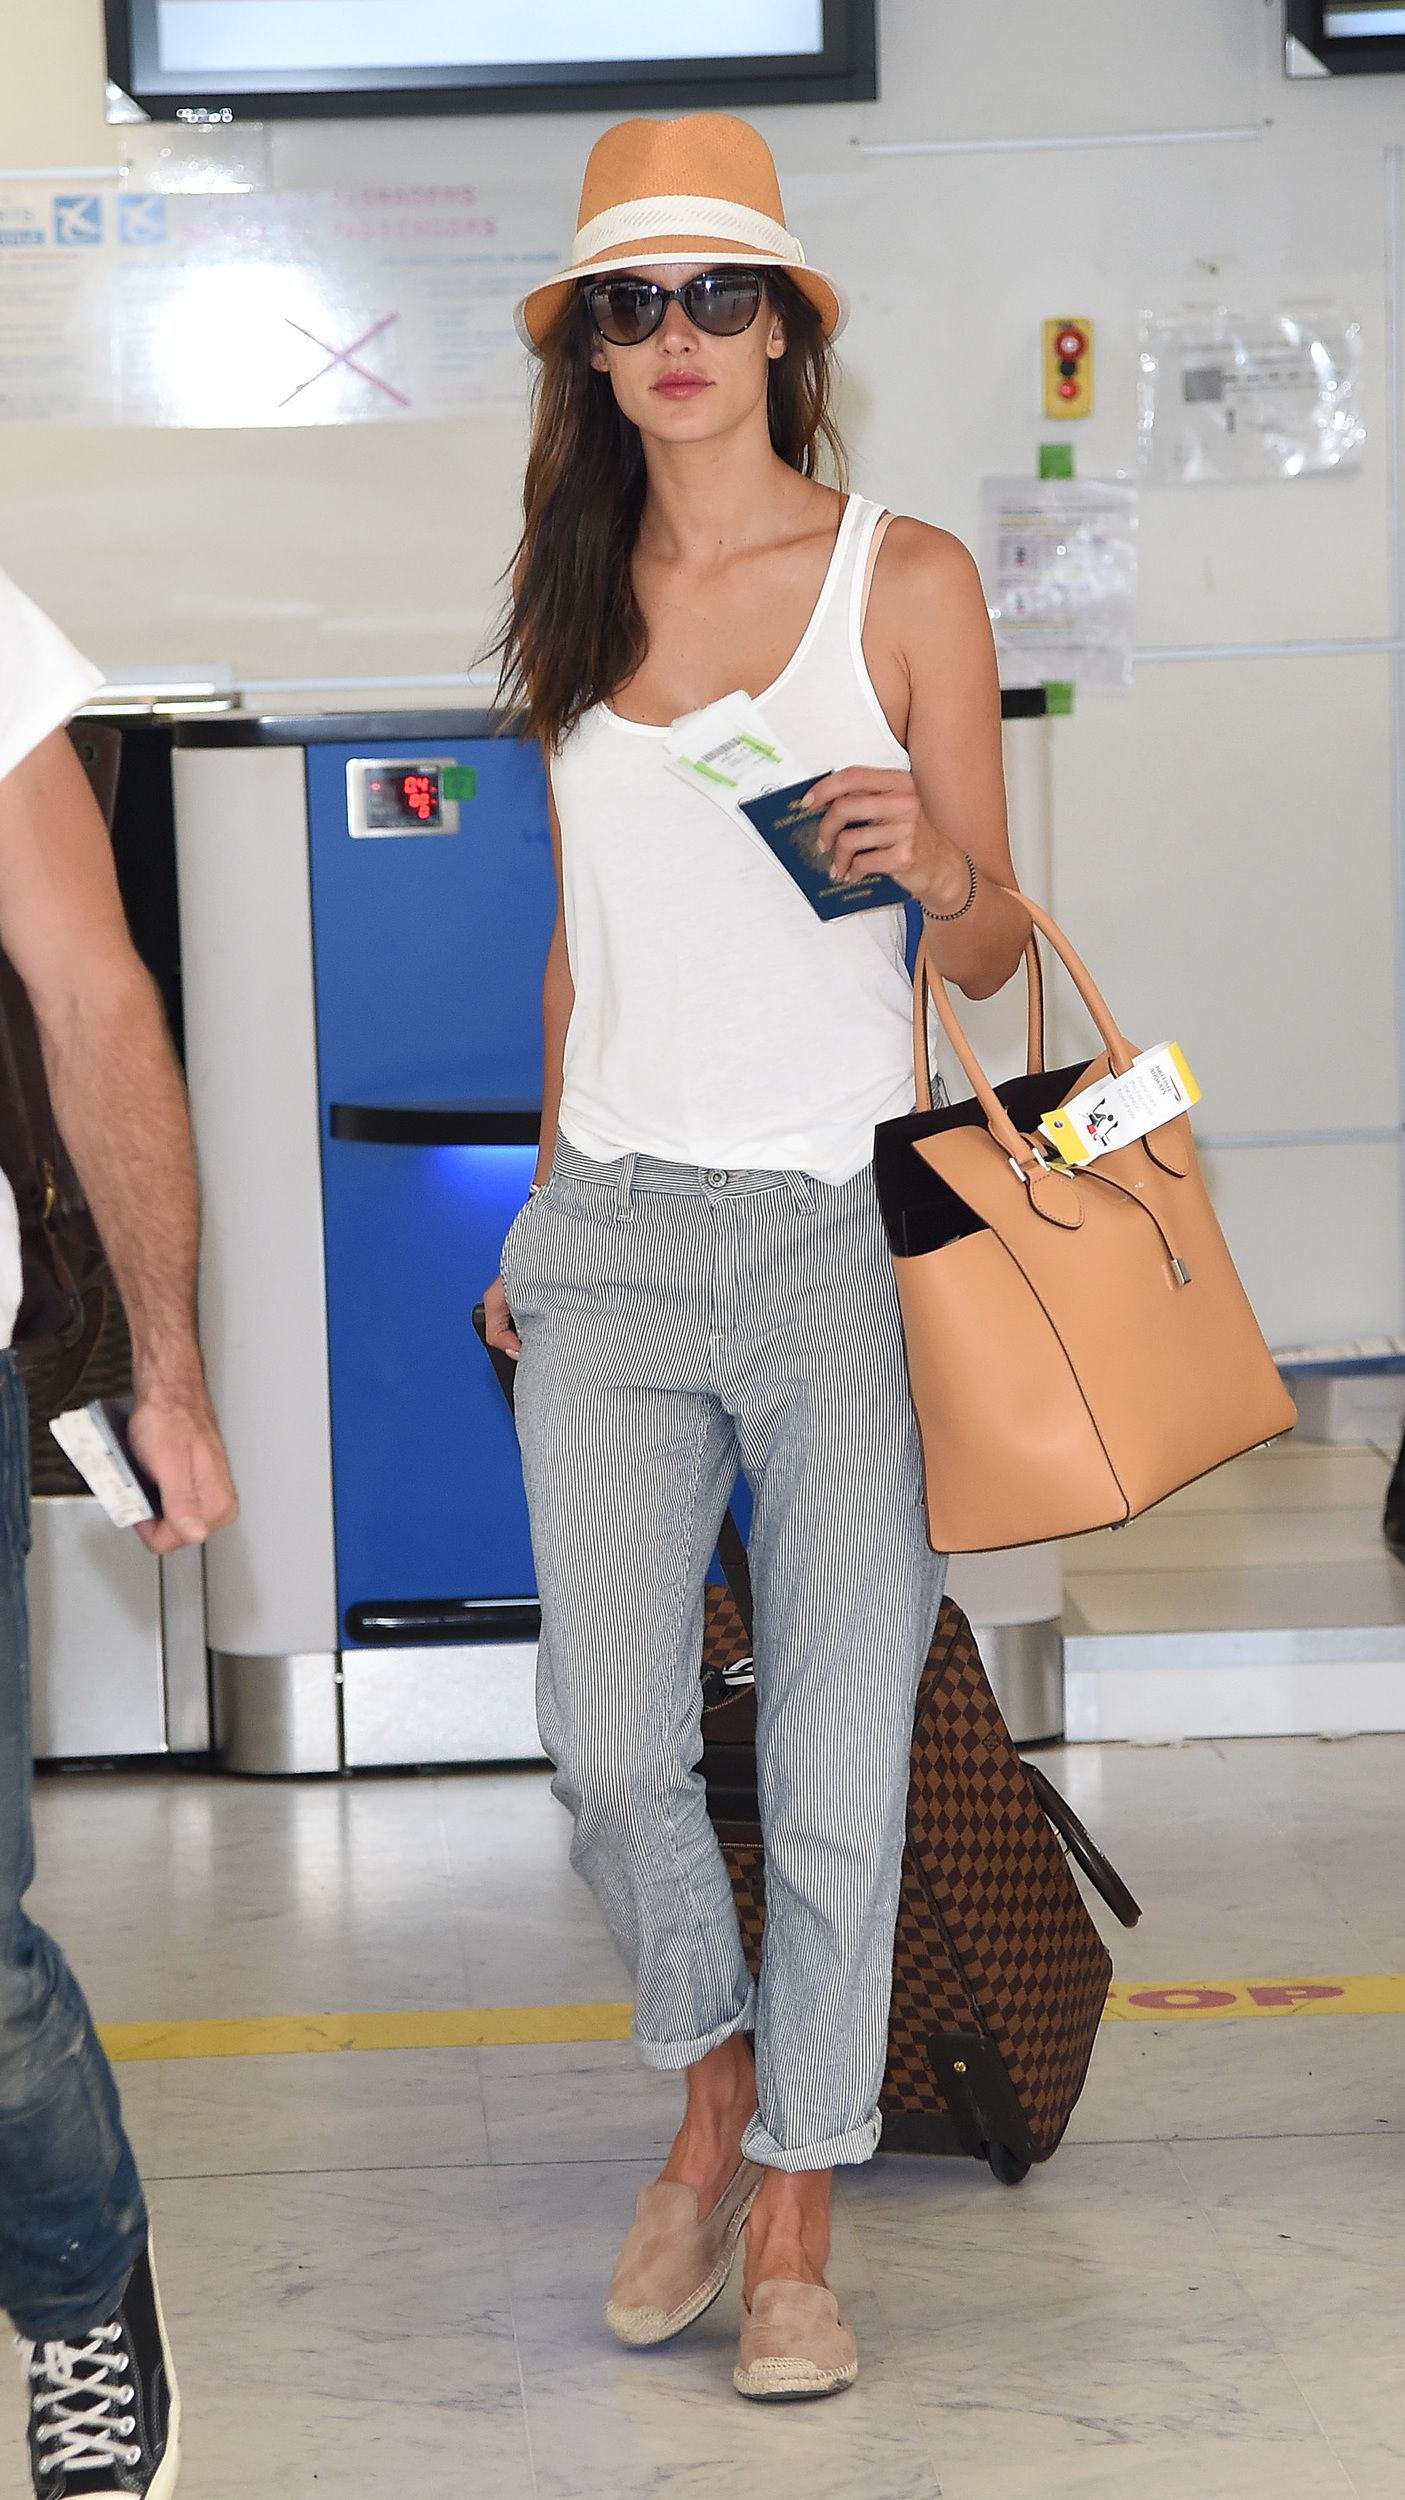 c2dd1bb75d7 Alessandra Ambrosio knows how to travel in style!  airportstyle via   stylelist